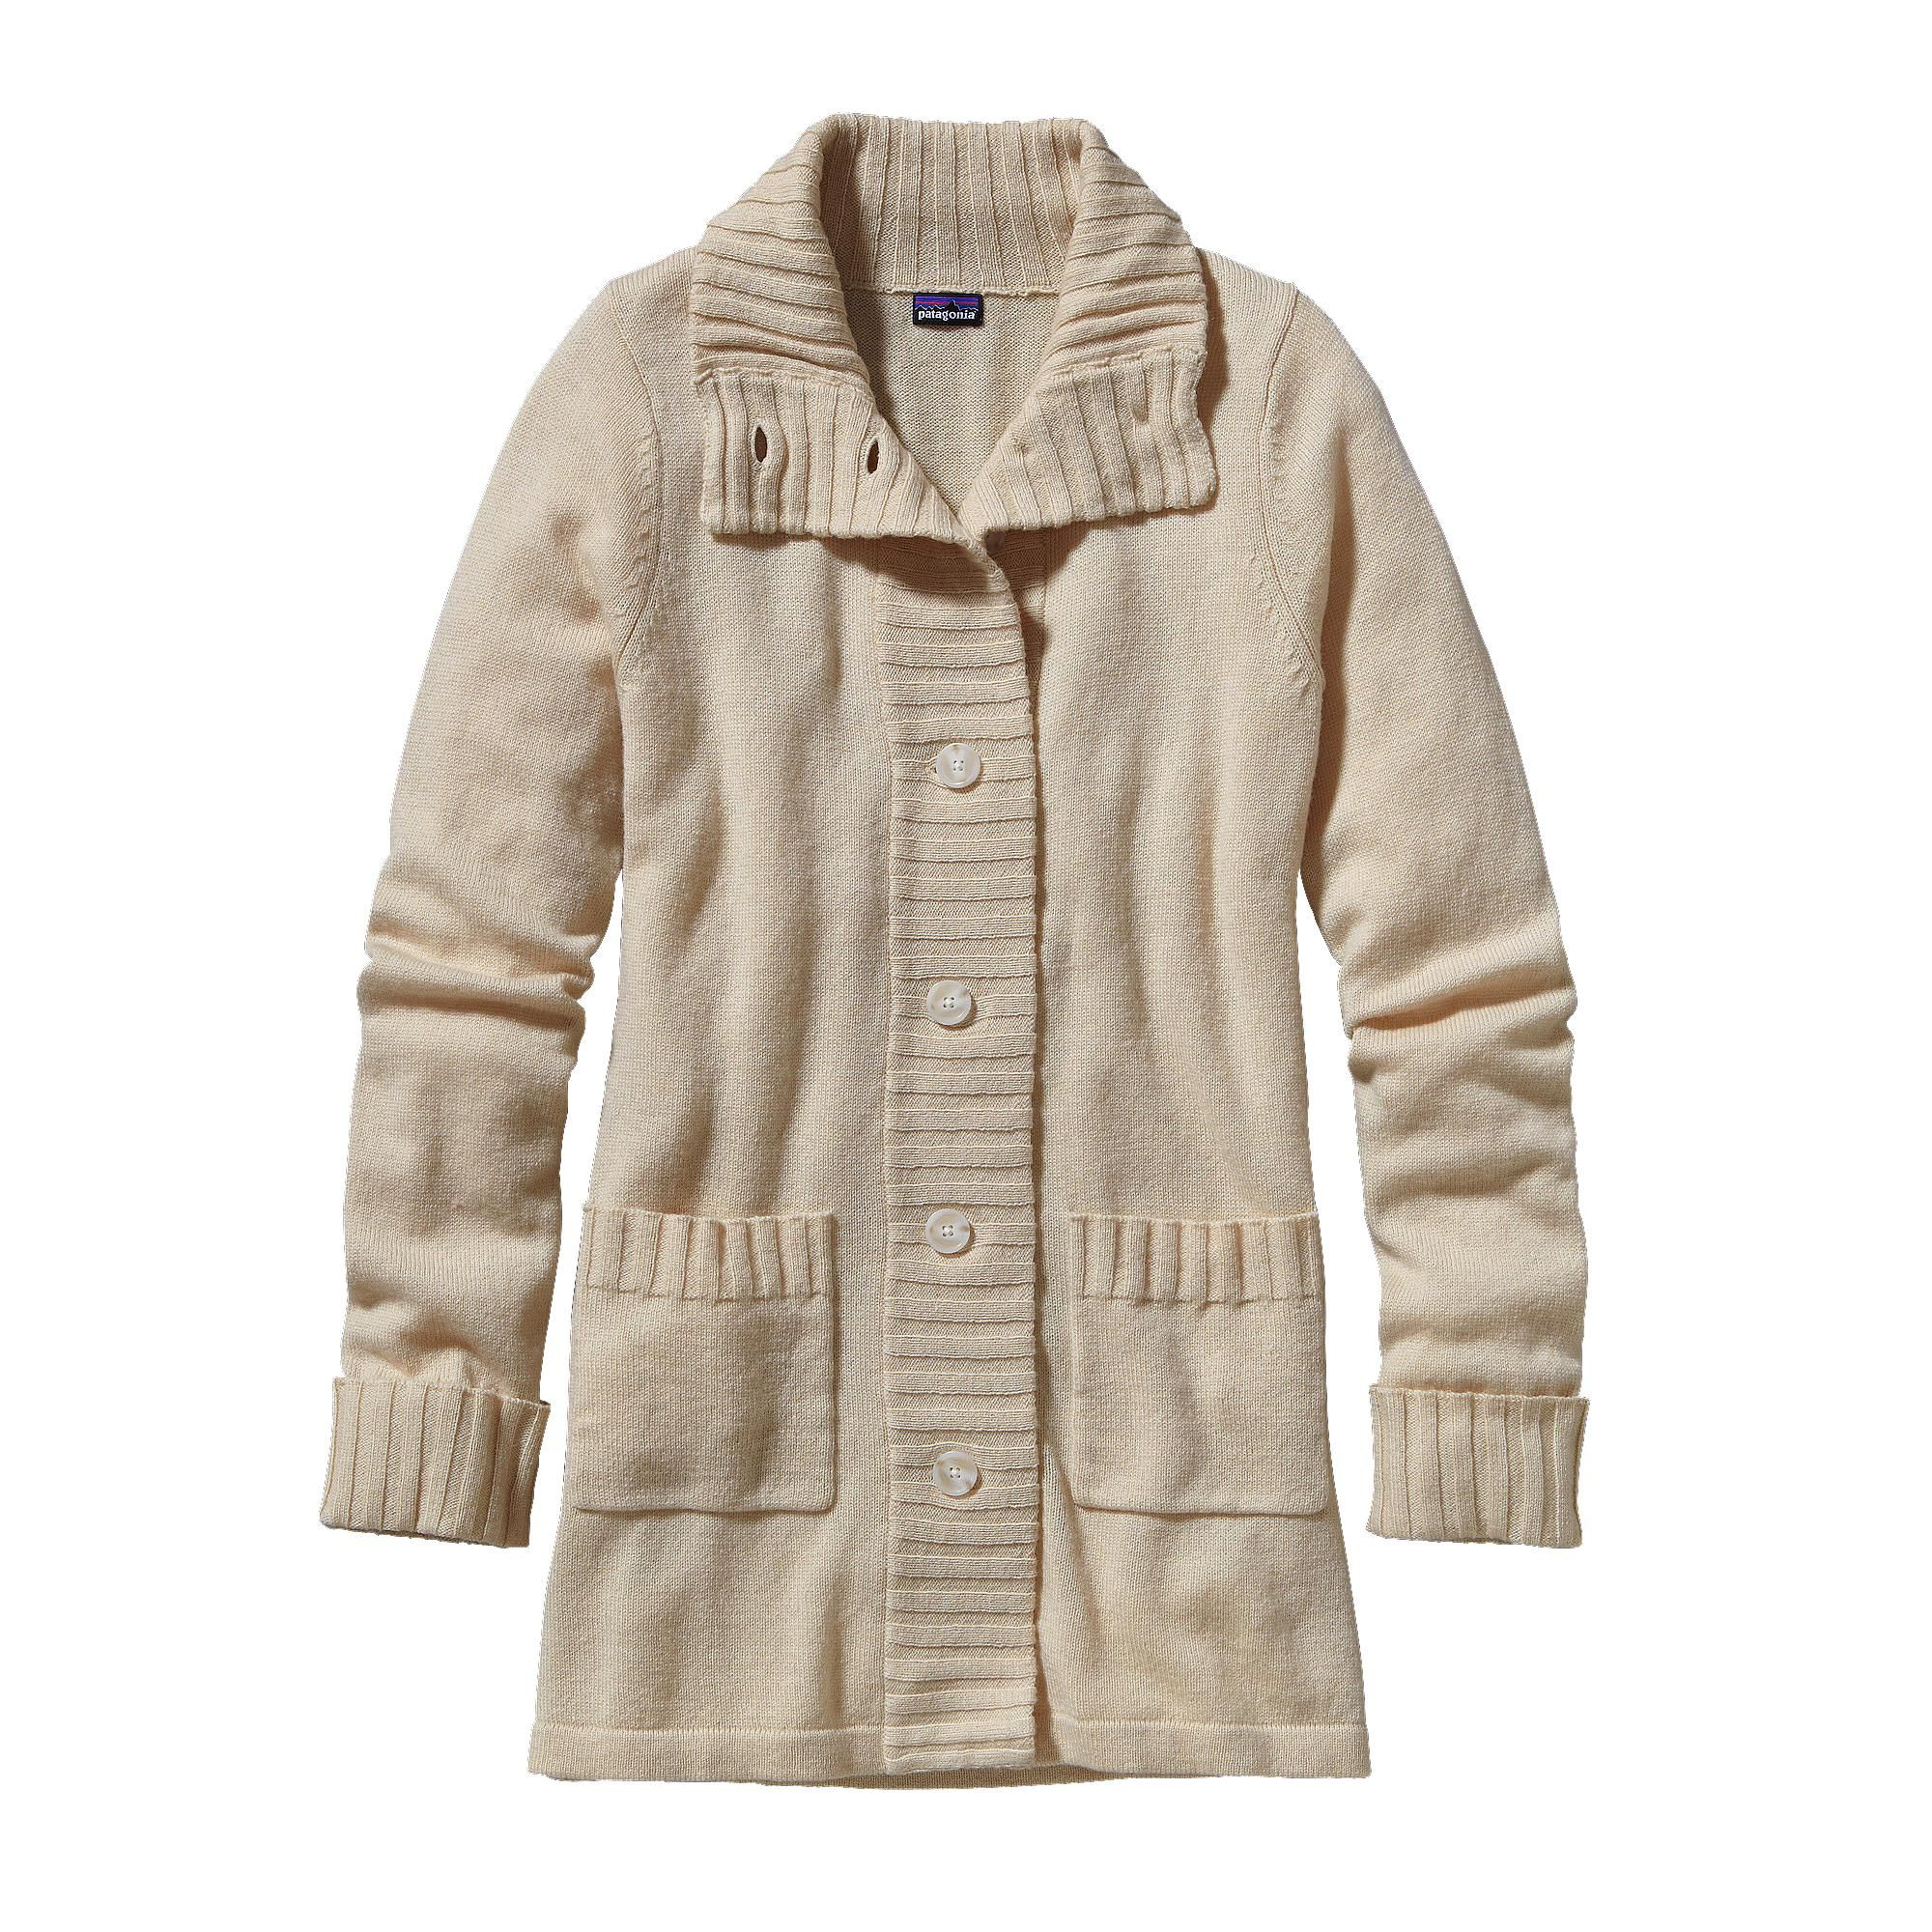 Patagonia Women's Lambswool Sweater Coat - Our soft merino wool ...